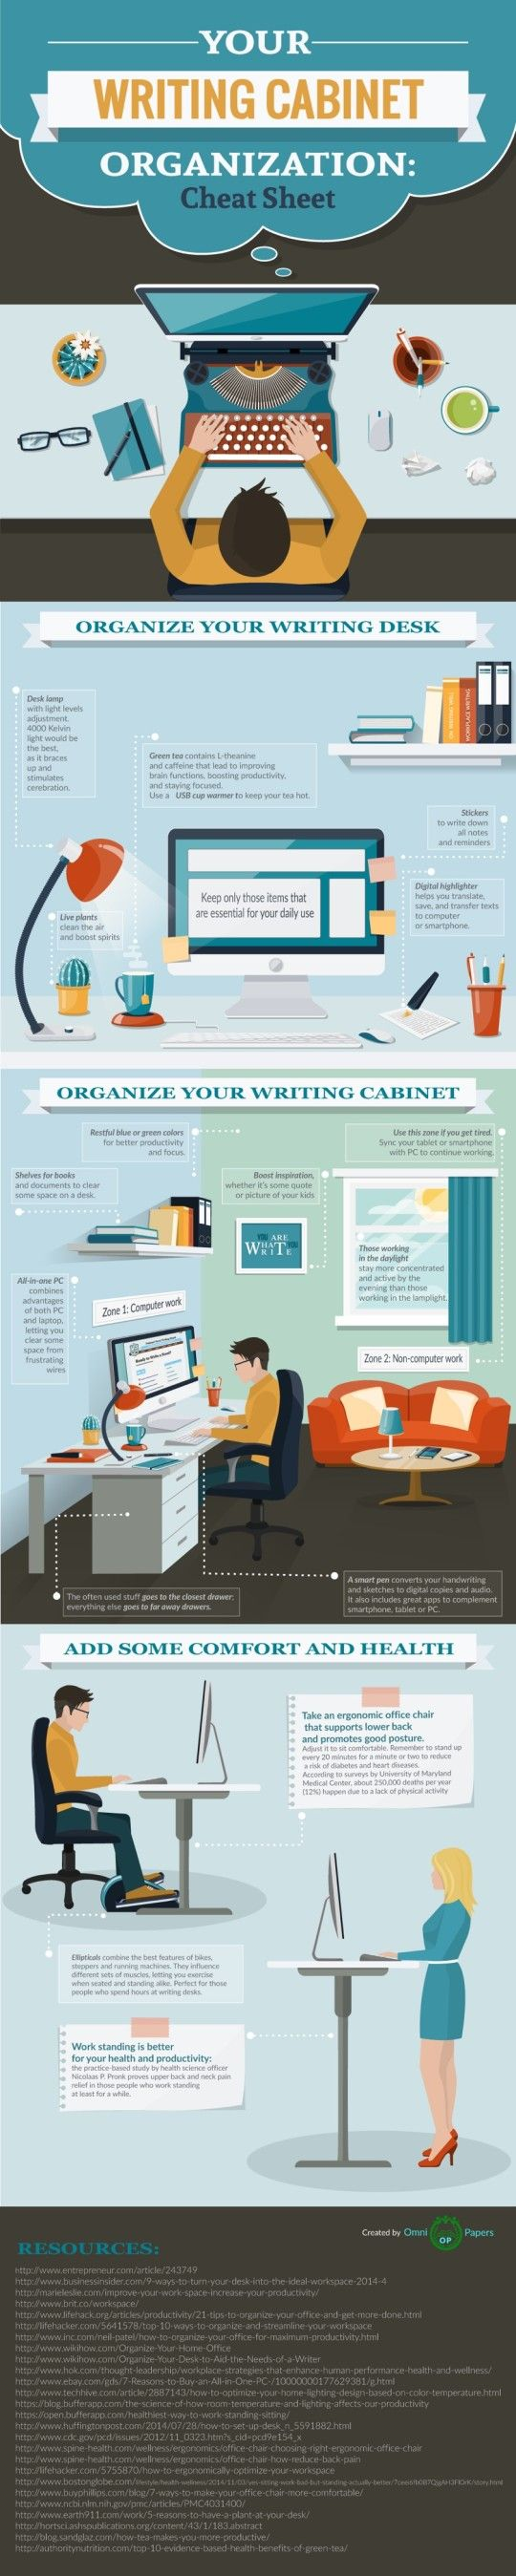 A properly organized #writing space will boost your creativity and productivity